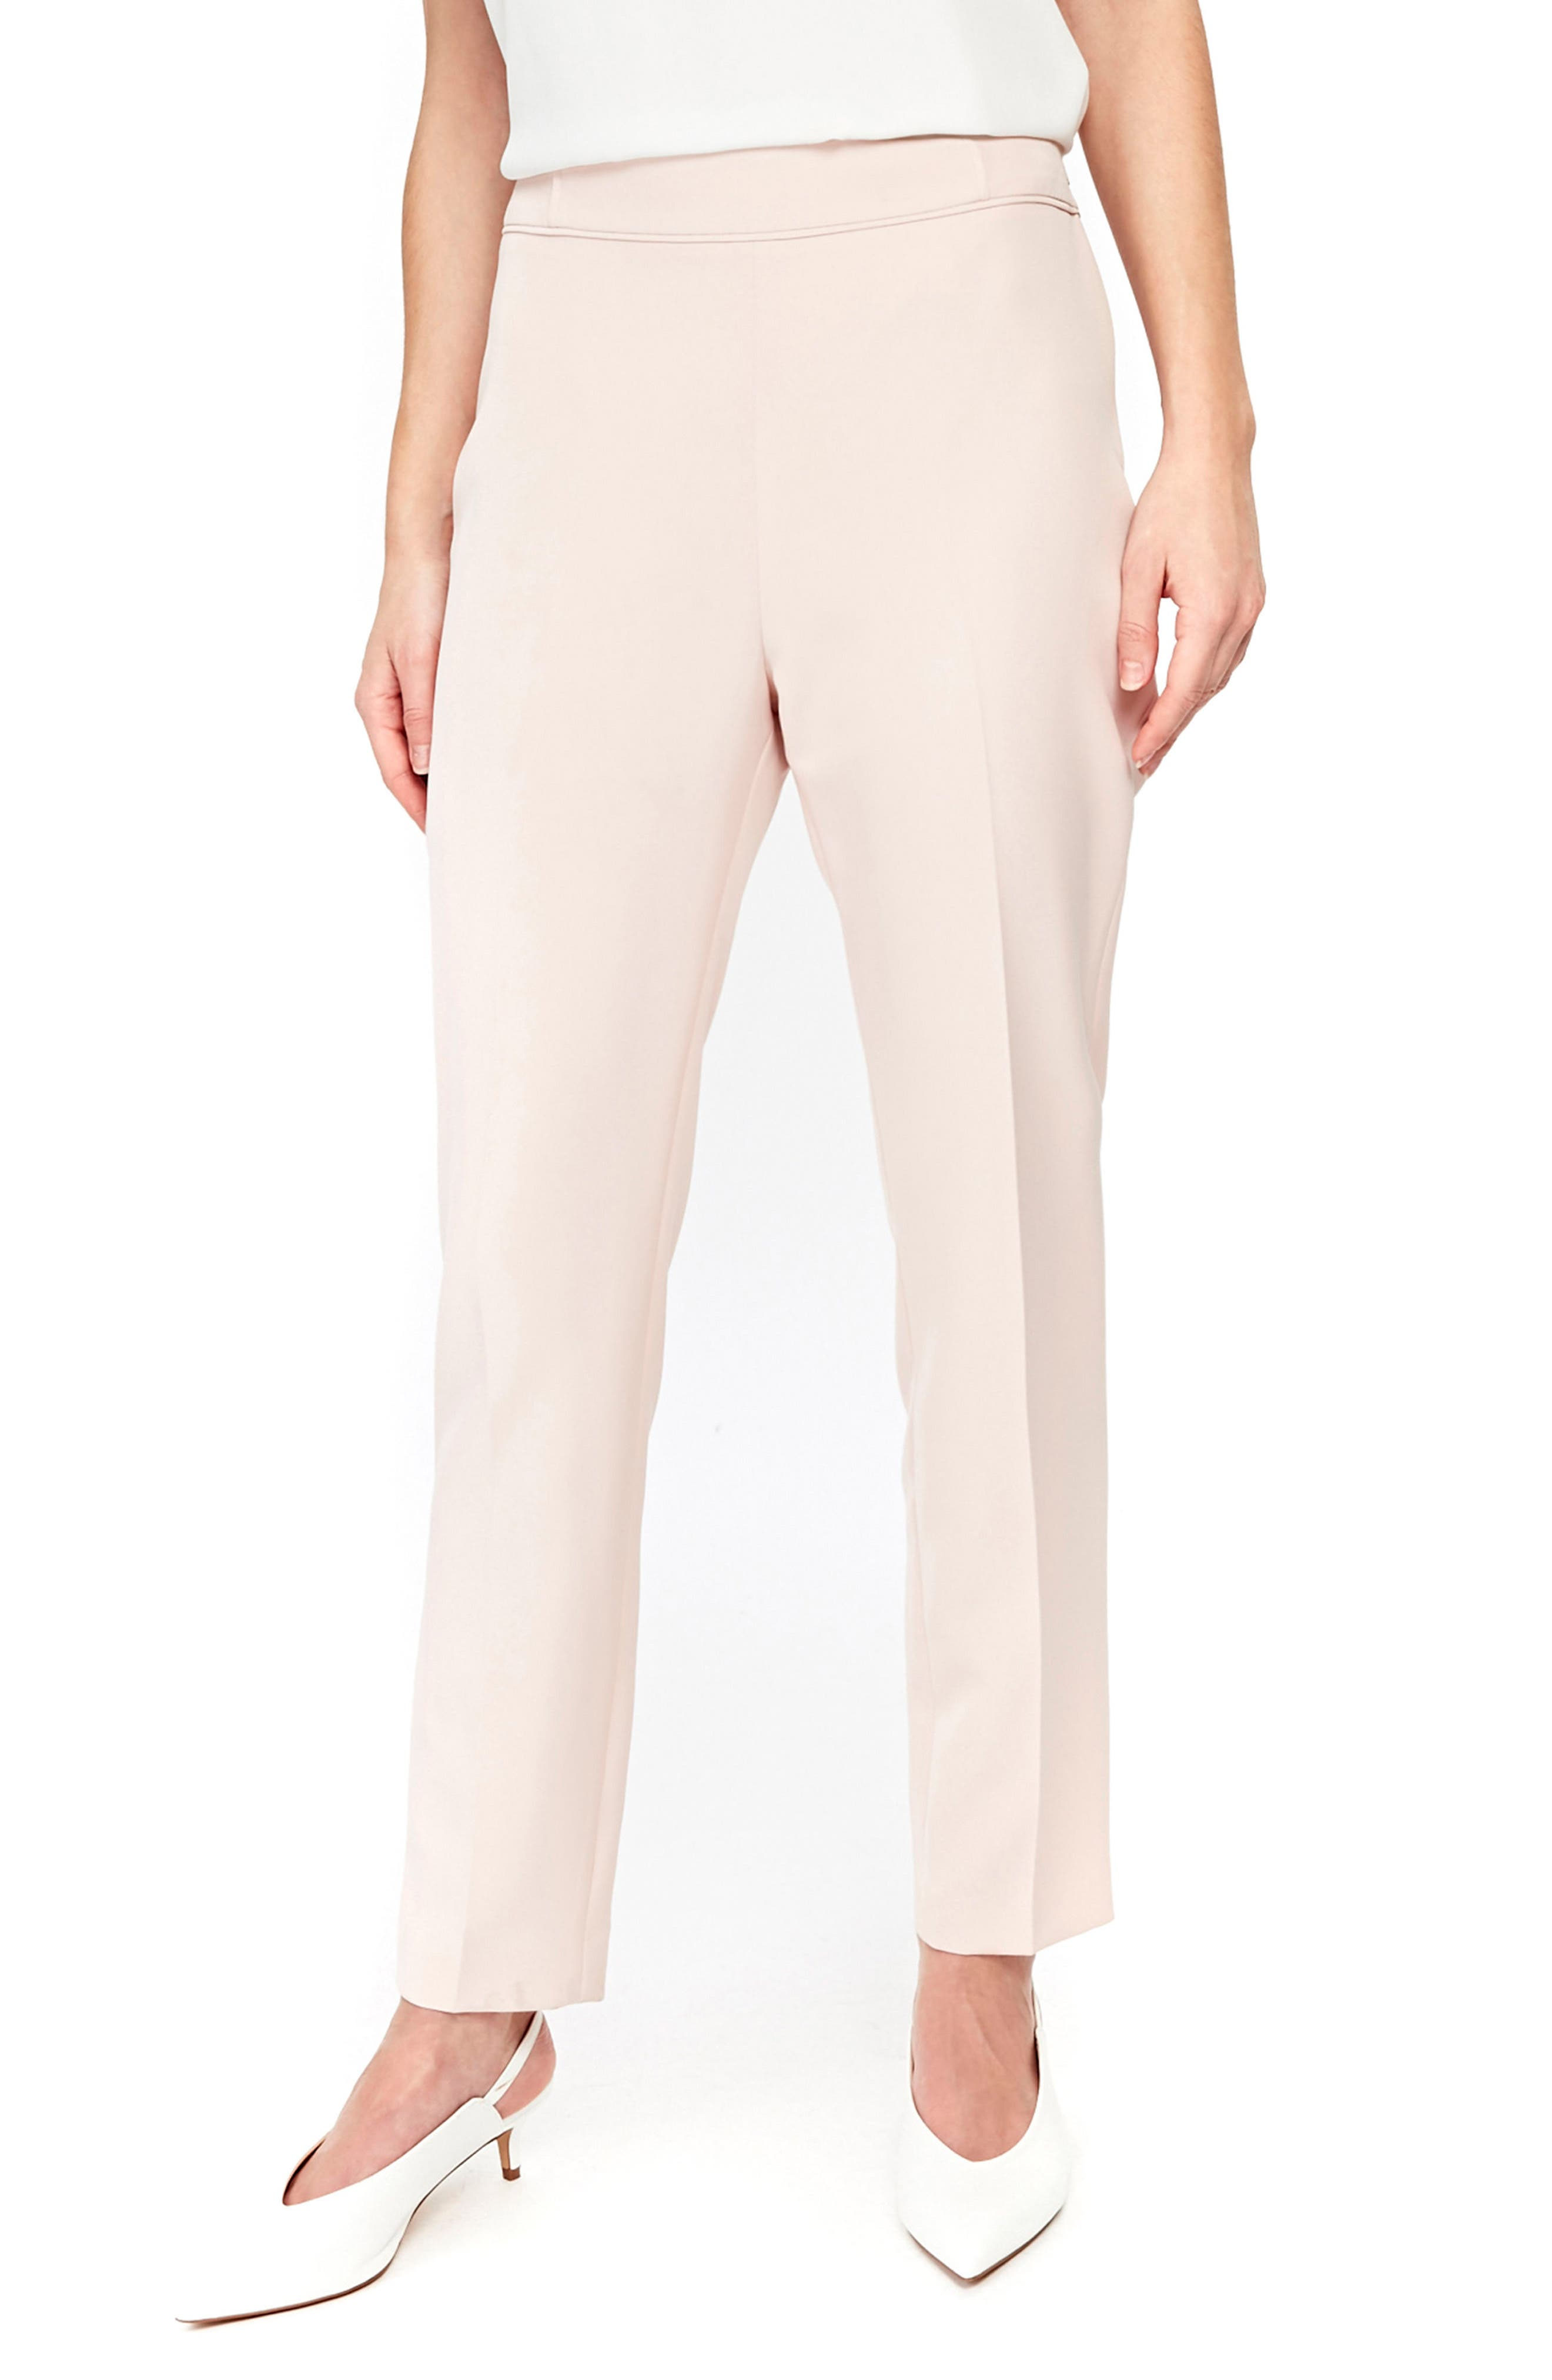 Sienna Trousers,                             Main thumbnail 1, color,                             650